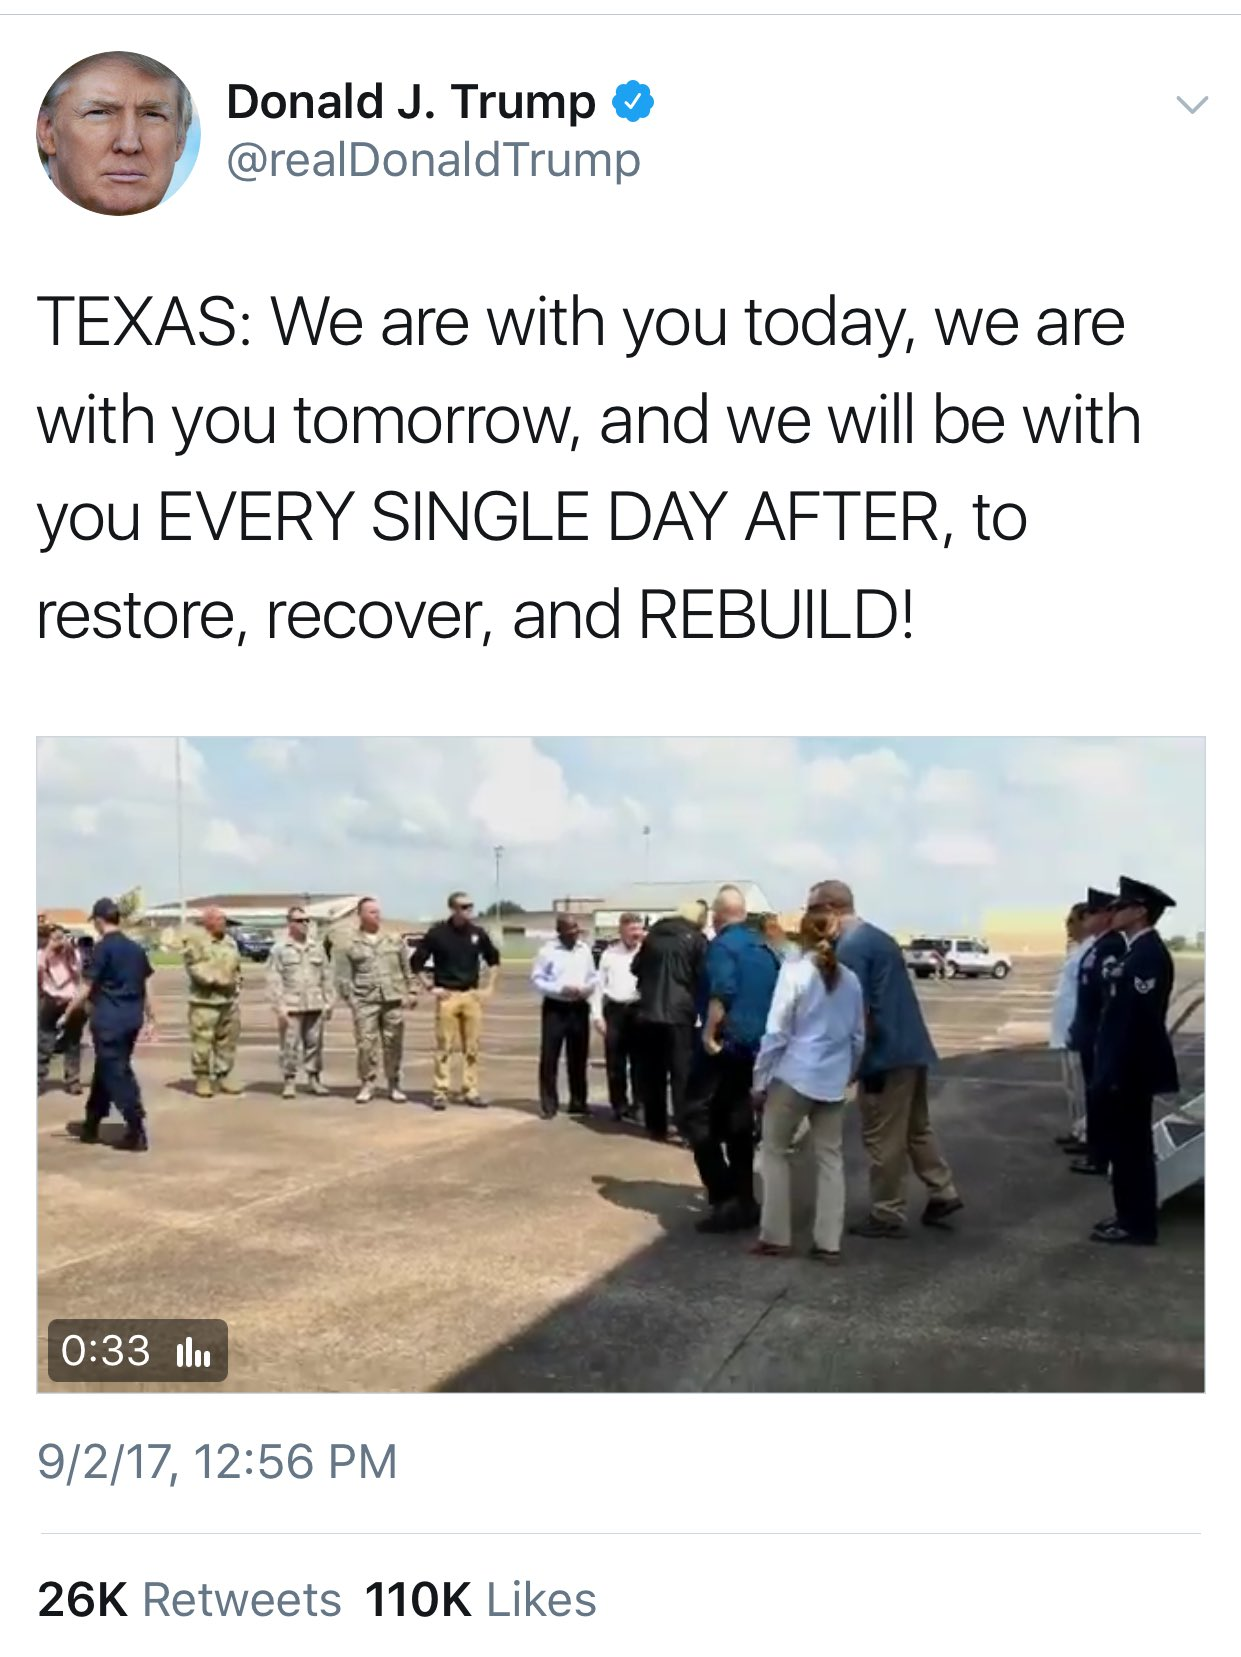 Just so you can see them side-by-side, here is Trump on Texas vs PR. Wonder what the difference is. Hmmm… https://t.co/5QWEAPgWG7